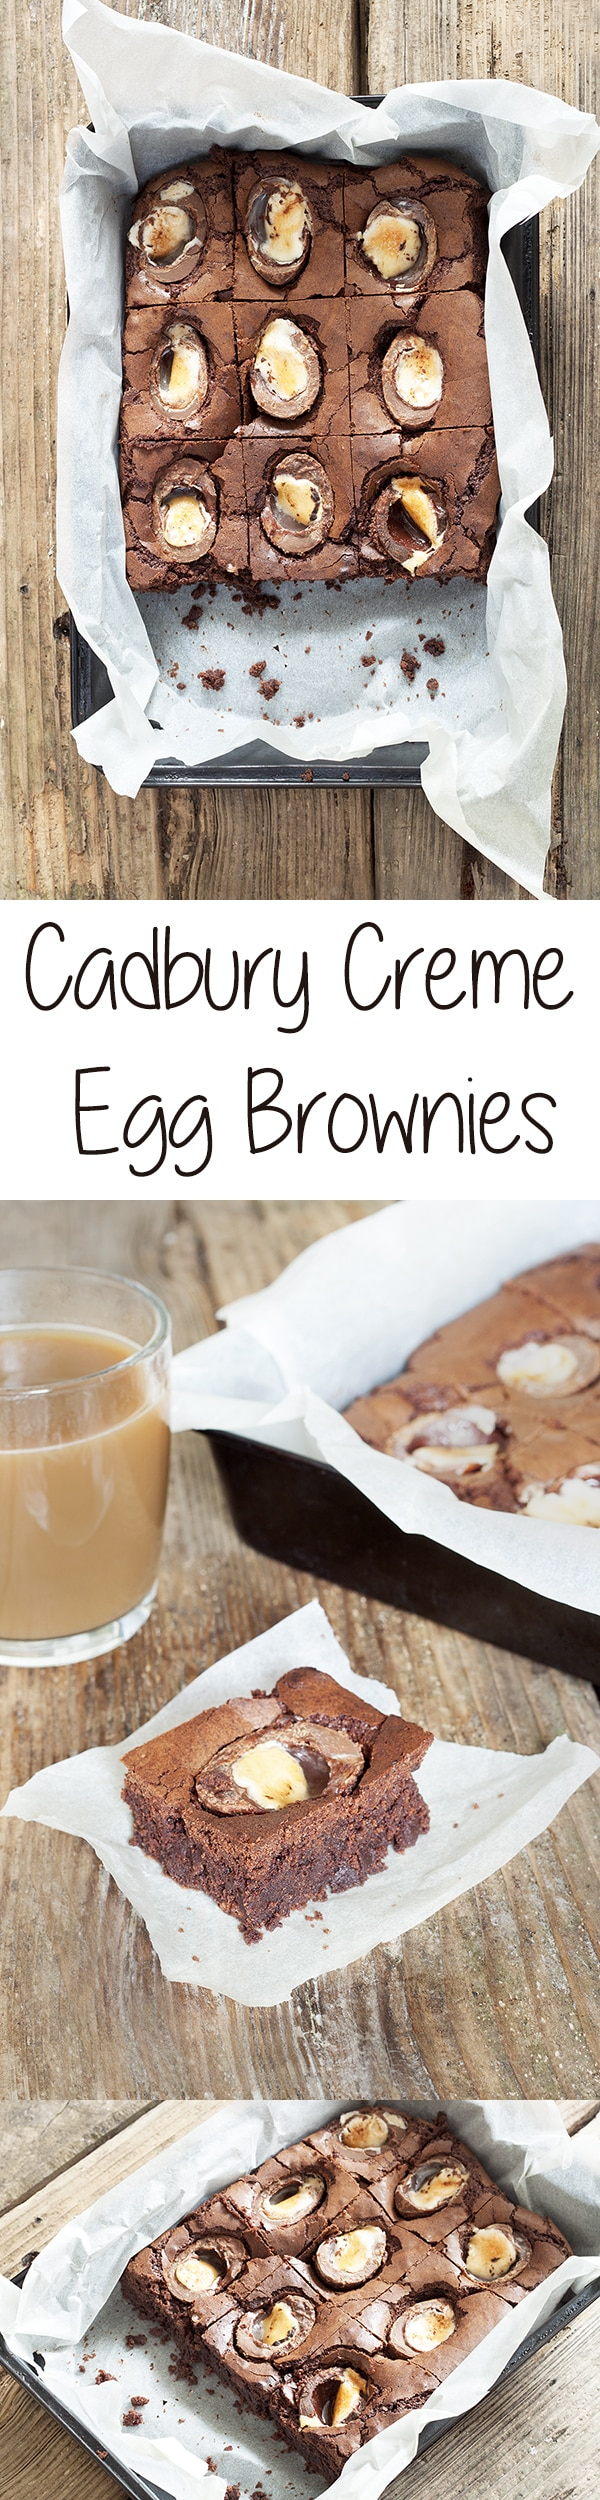 cadbury-creme-egg-brownies-scrumptious-recipe-4